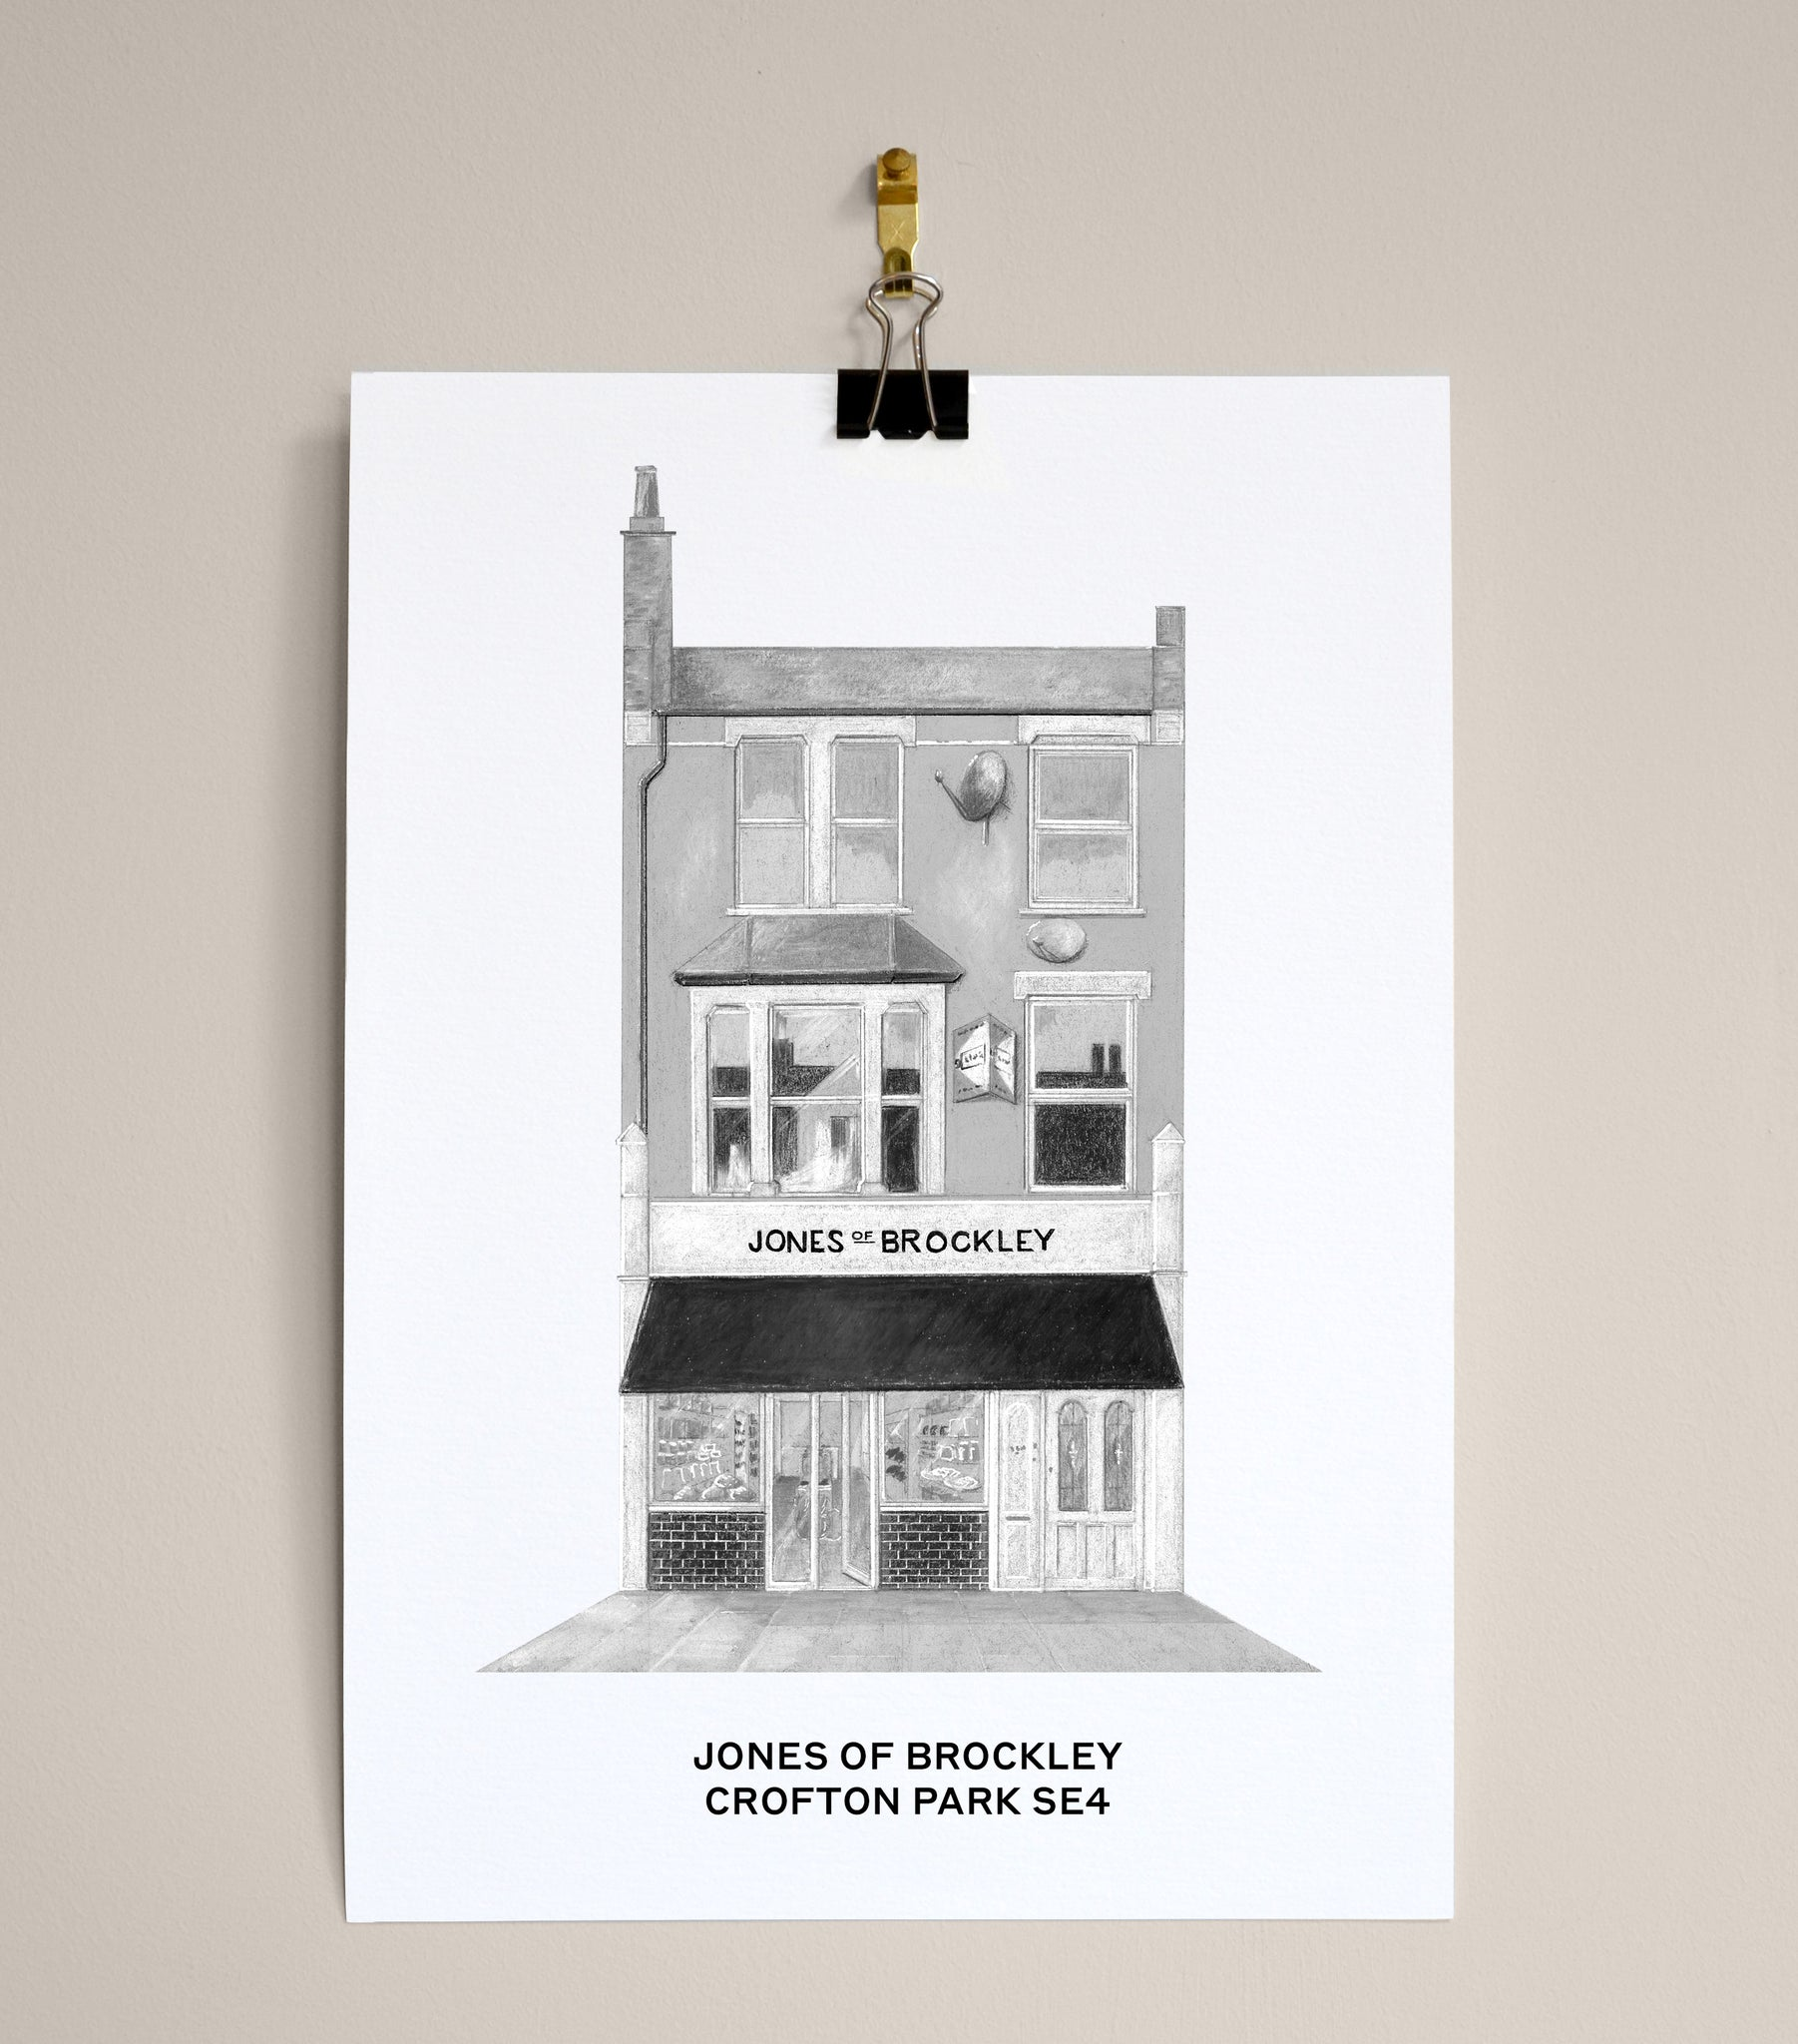 JONES OF BROCKLEY, CROFTON PARK SE4